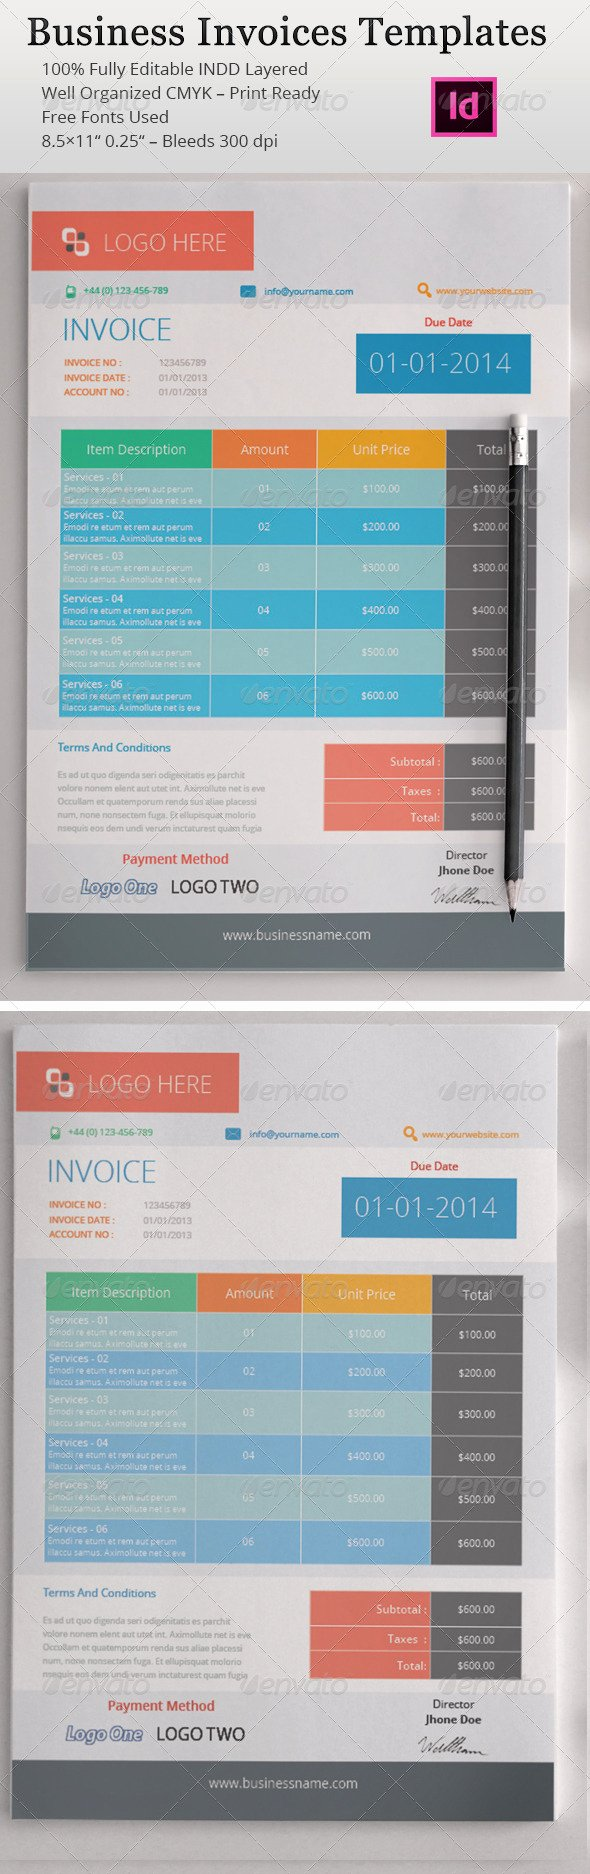 Indesign Invoice Template Free Elegant Indesign Templates Invoices Dondrup